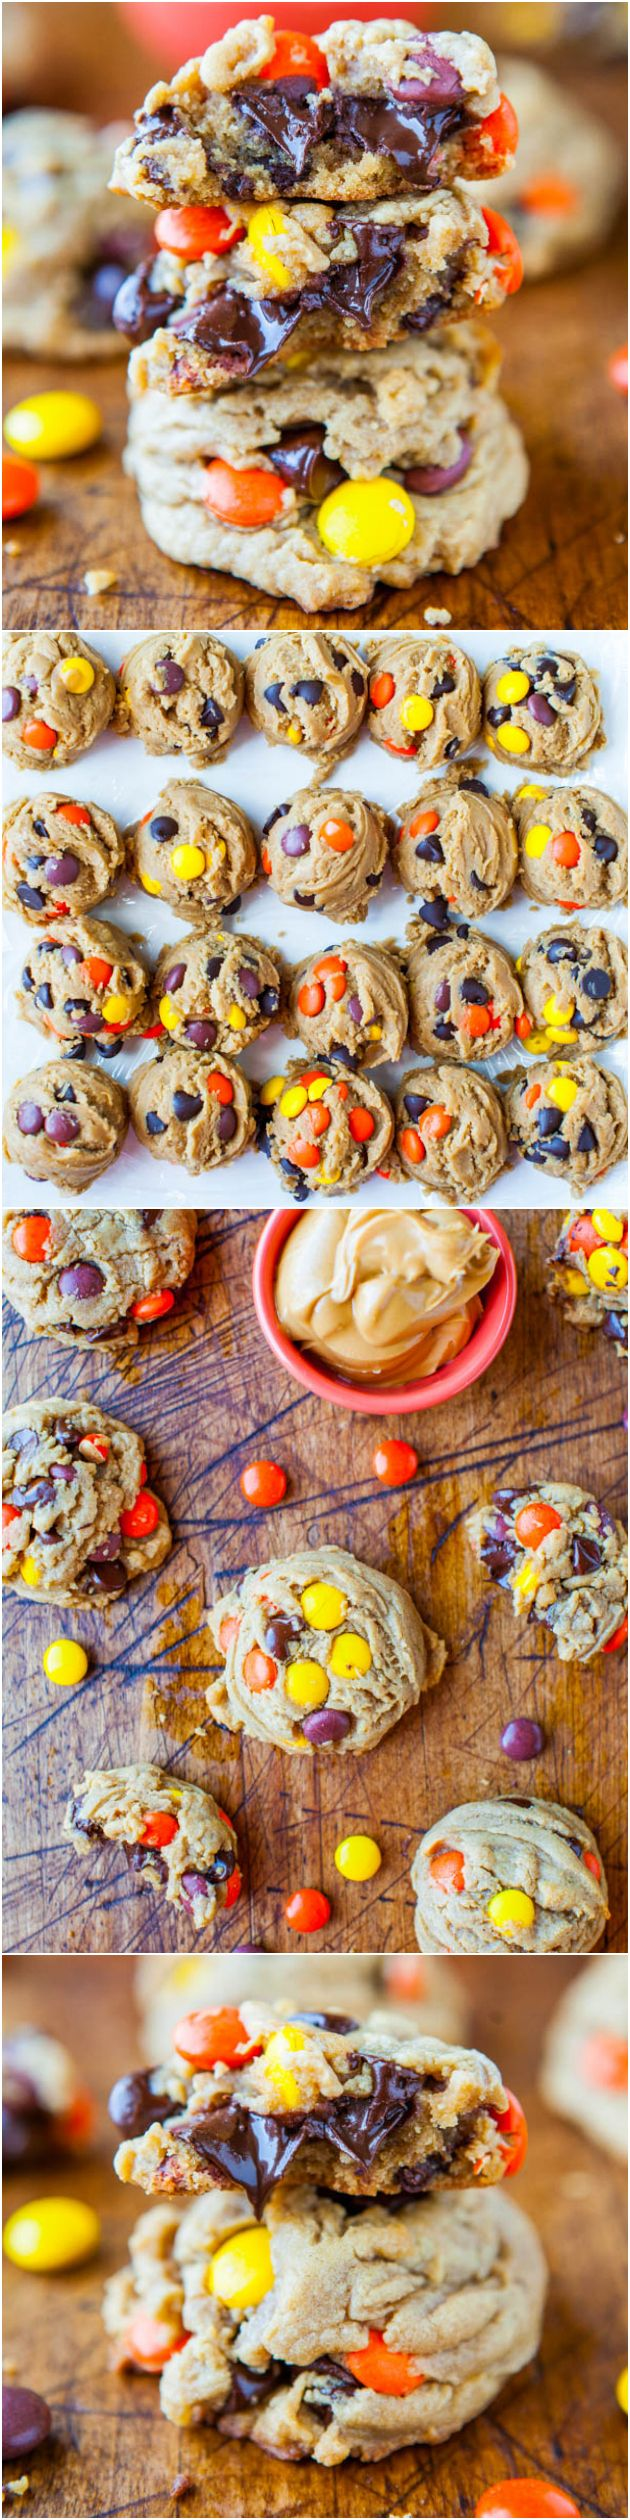 Reese's Pieces Soft Peanut Butter Cookies - Peanut butter lovers will go nuts for these super soft cookies loaded with Reese's Pieces and chocolate!